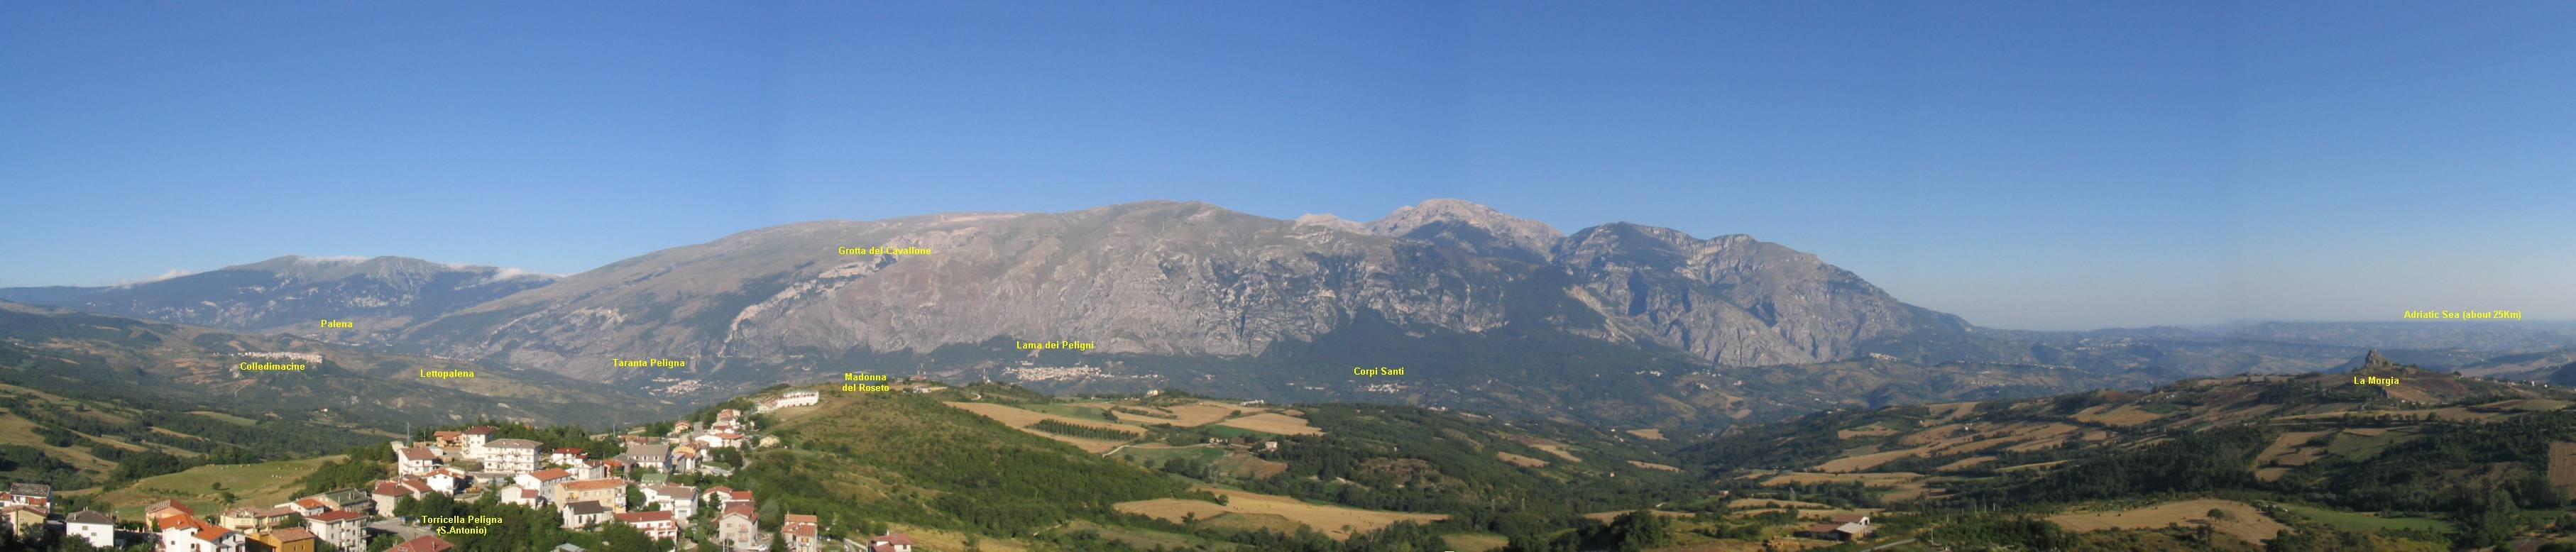 Maiella Panoramic View, by Silvio DiPaolo